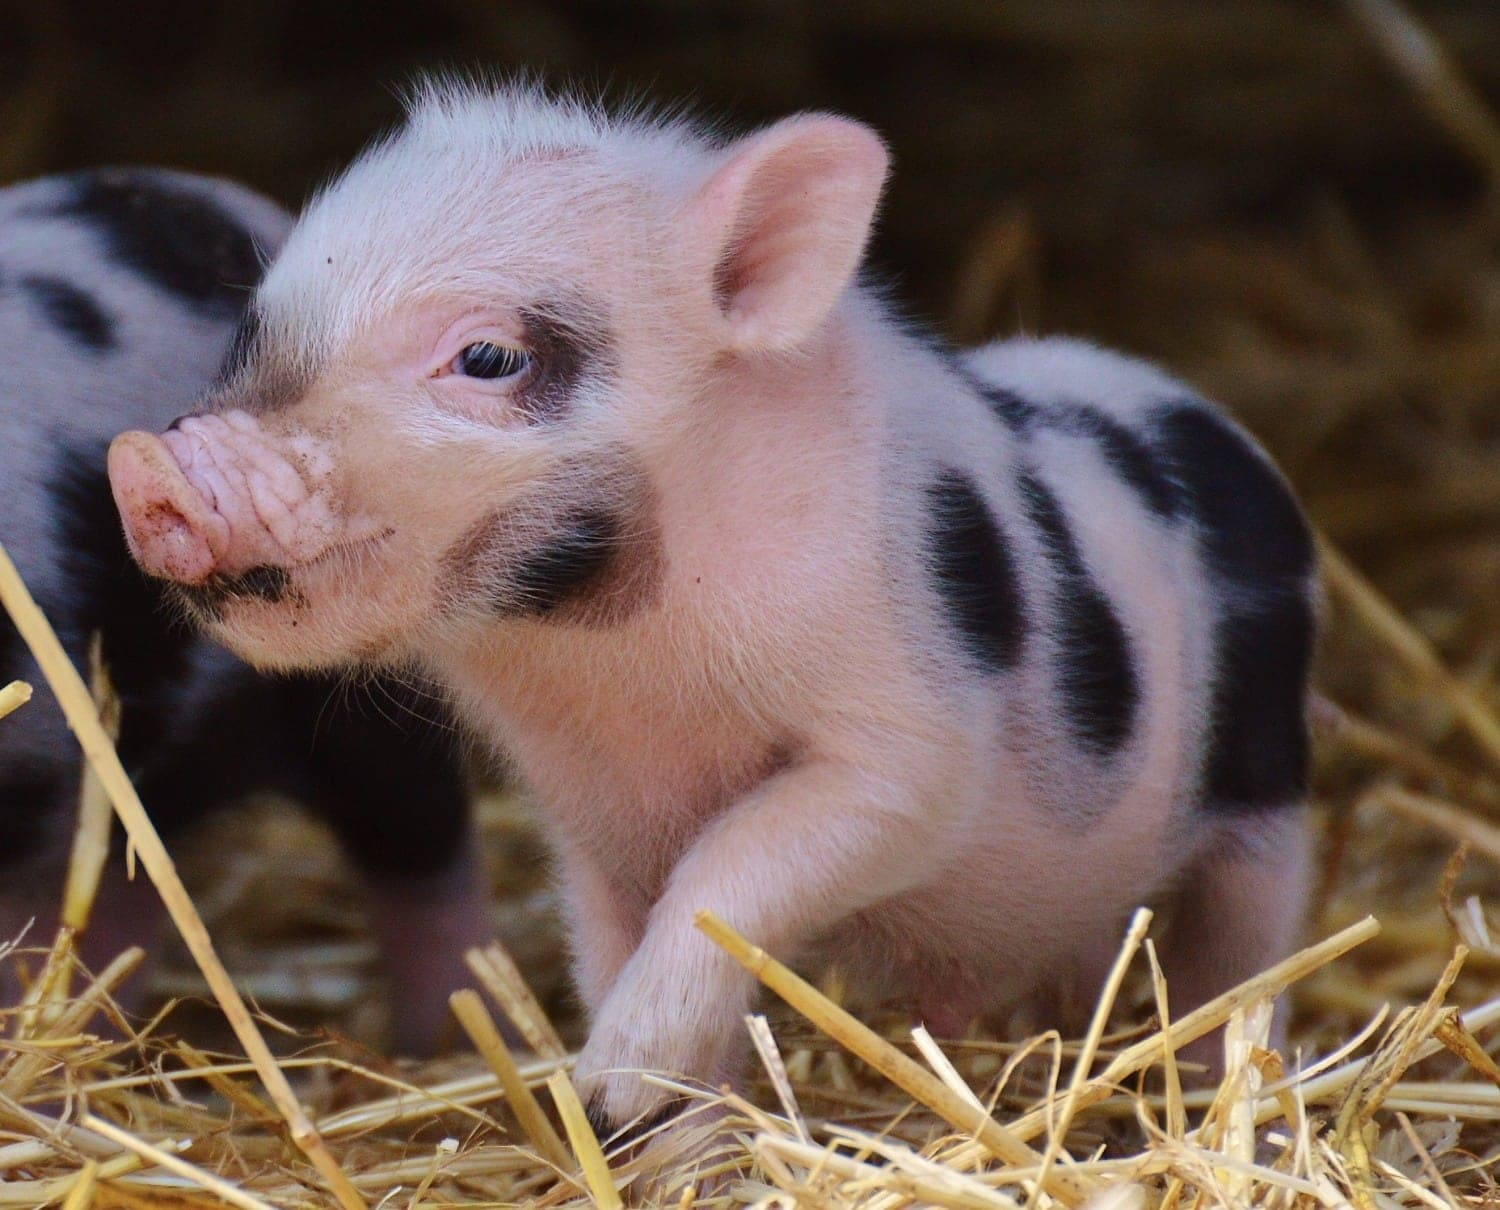 spotted baby piglet